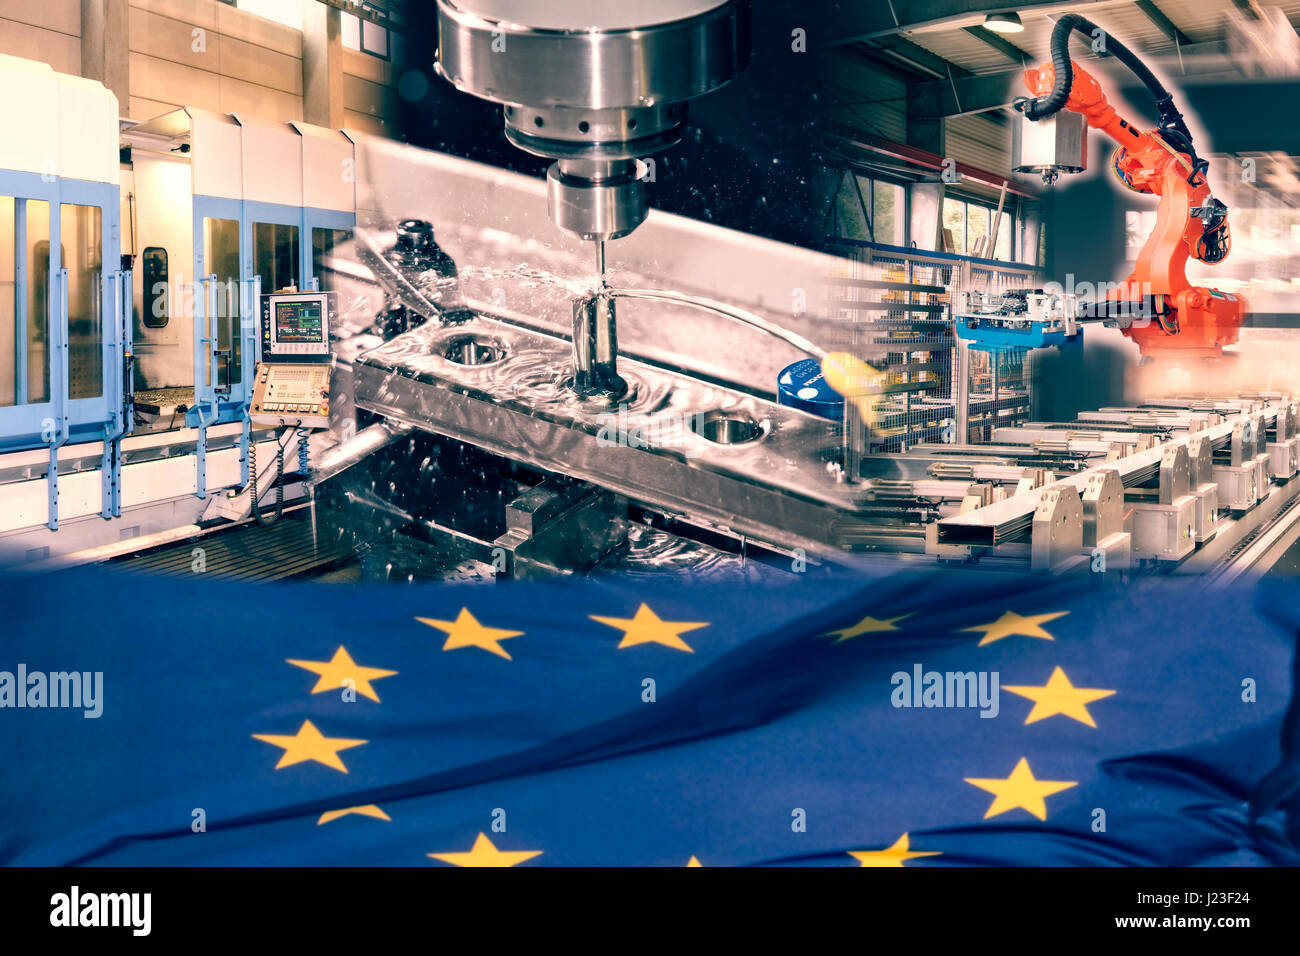 Industrial production and European flag - Stock Image